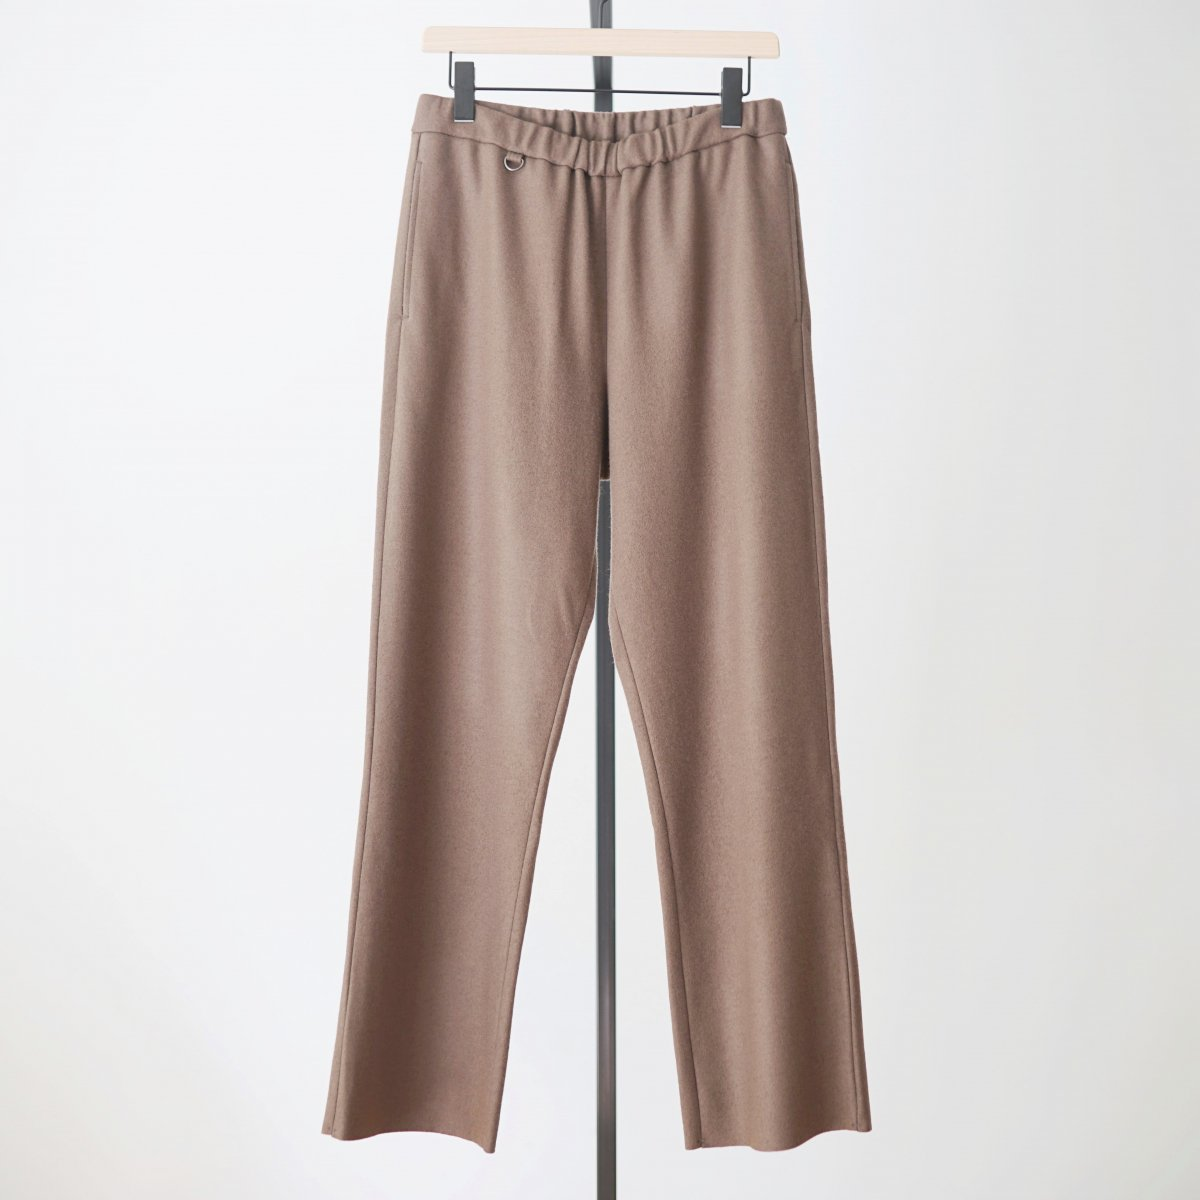 【UNDECORATED アンデコレイテッド】S140 WOOL KNIT PANTS - BROWN